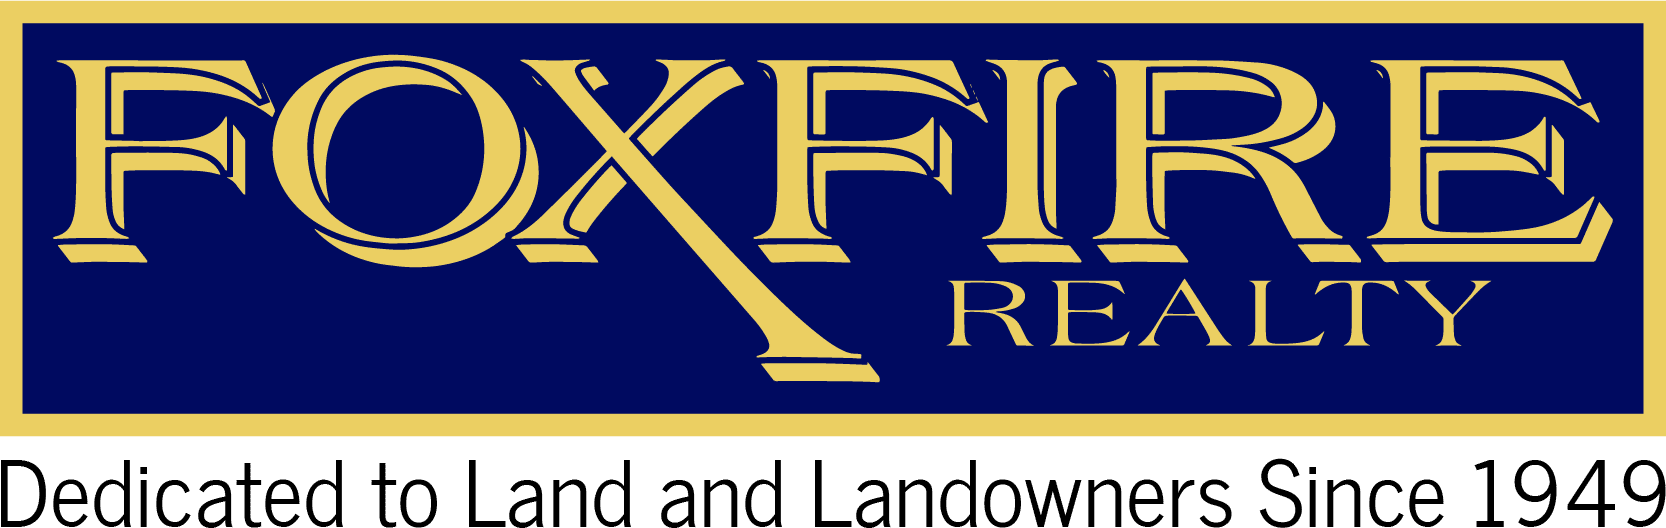 Timberland Investment - Foxfire Realty